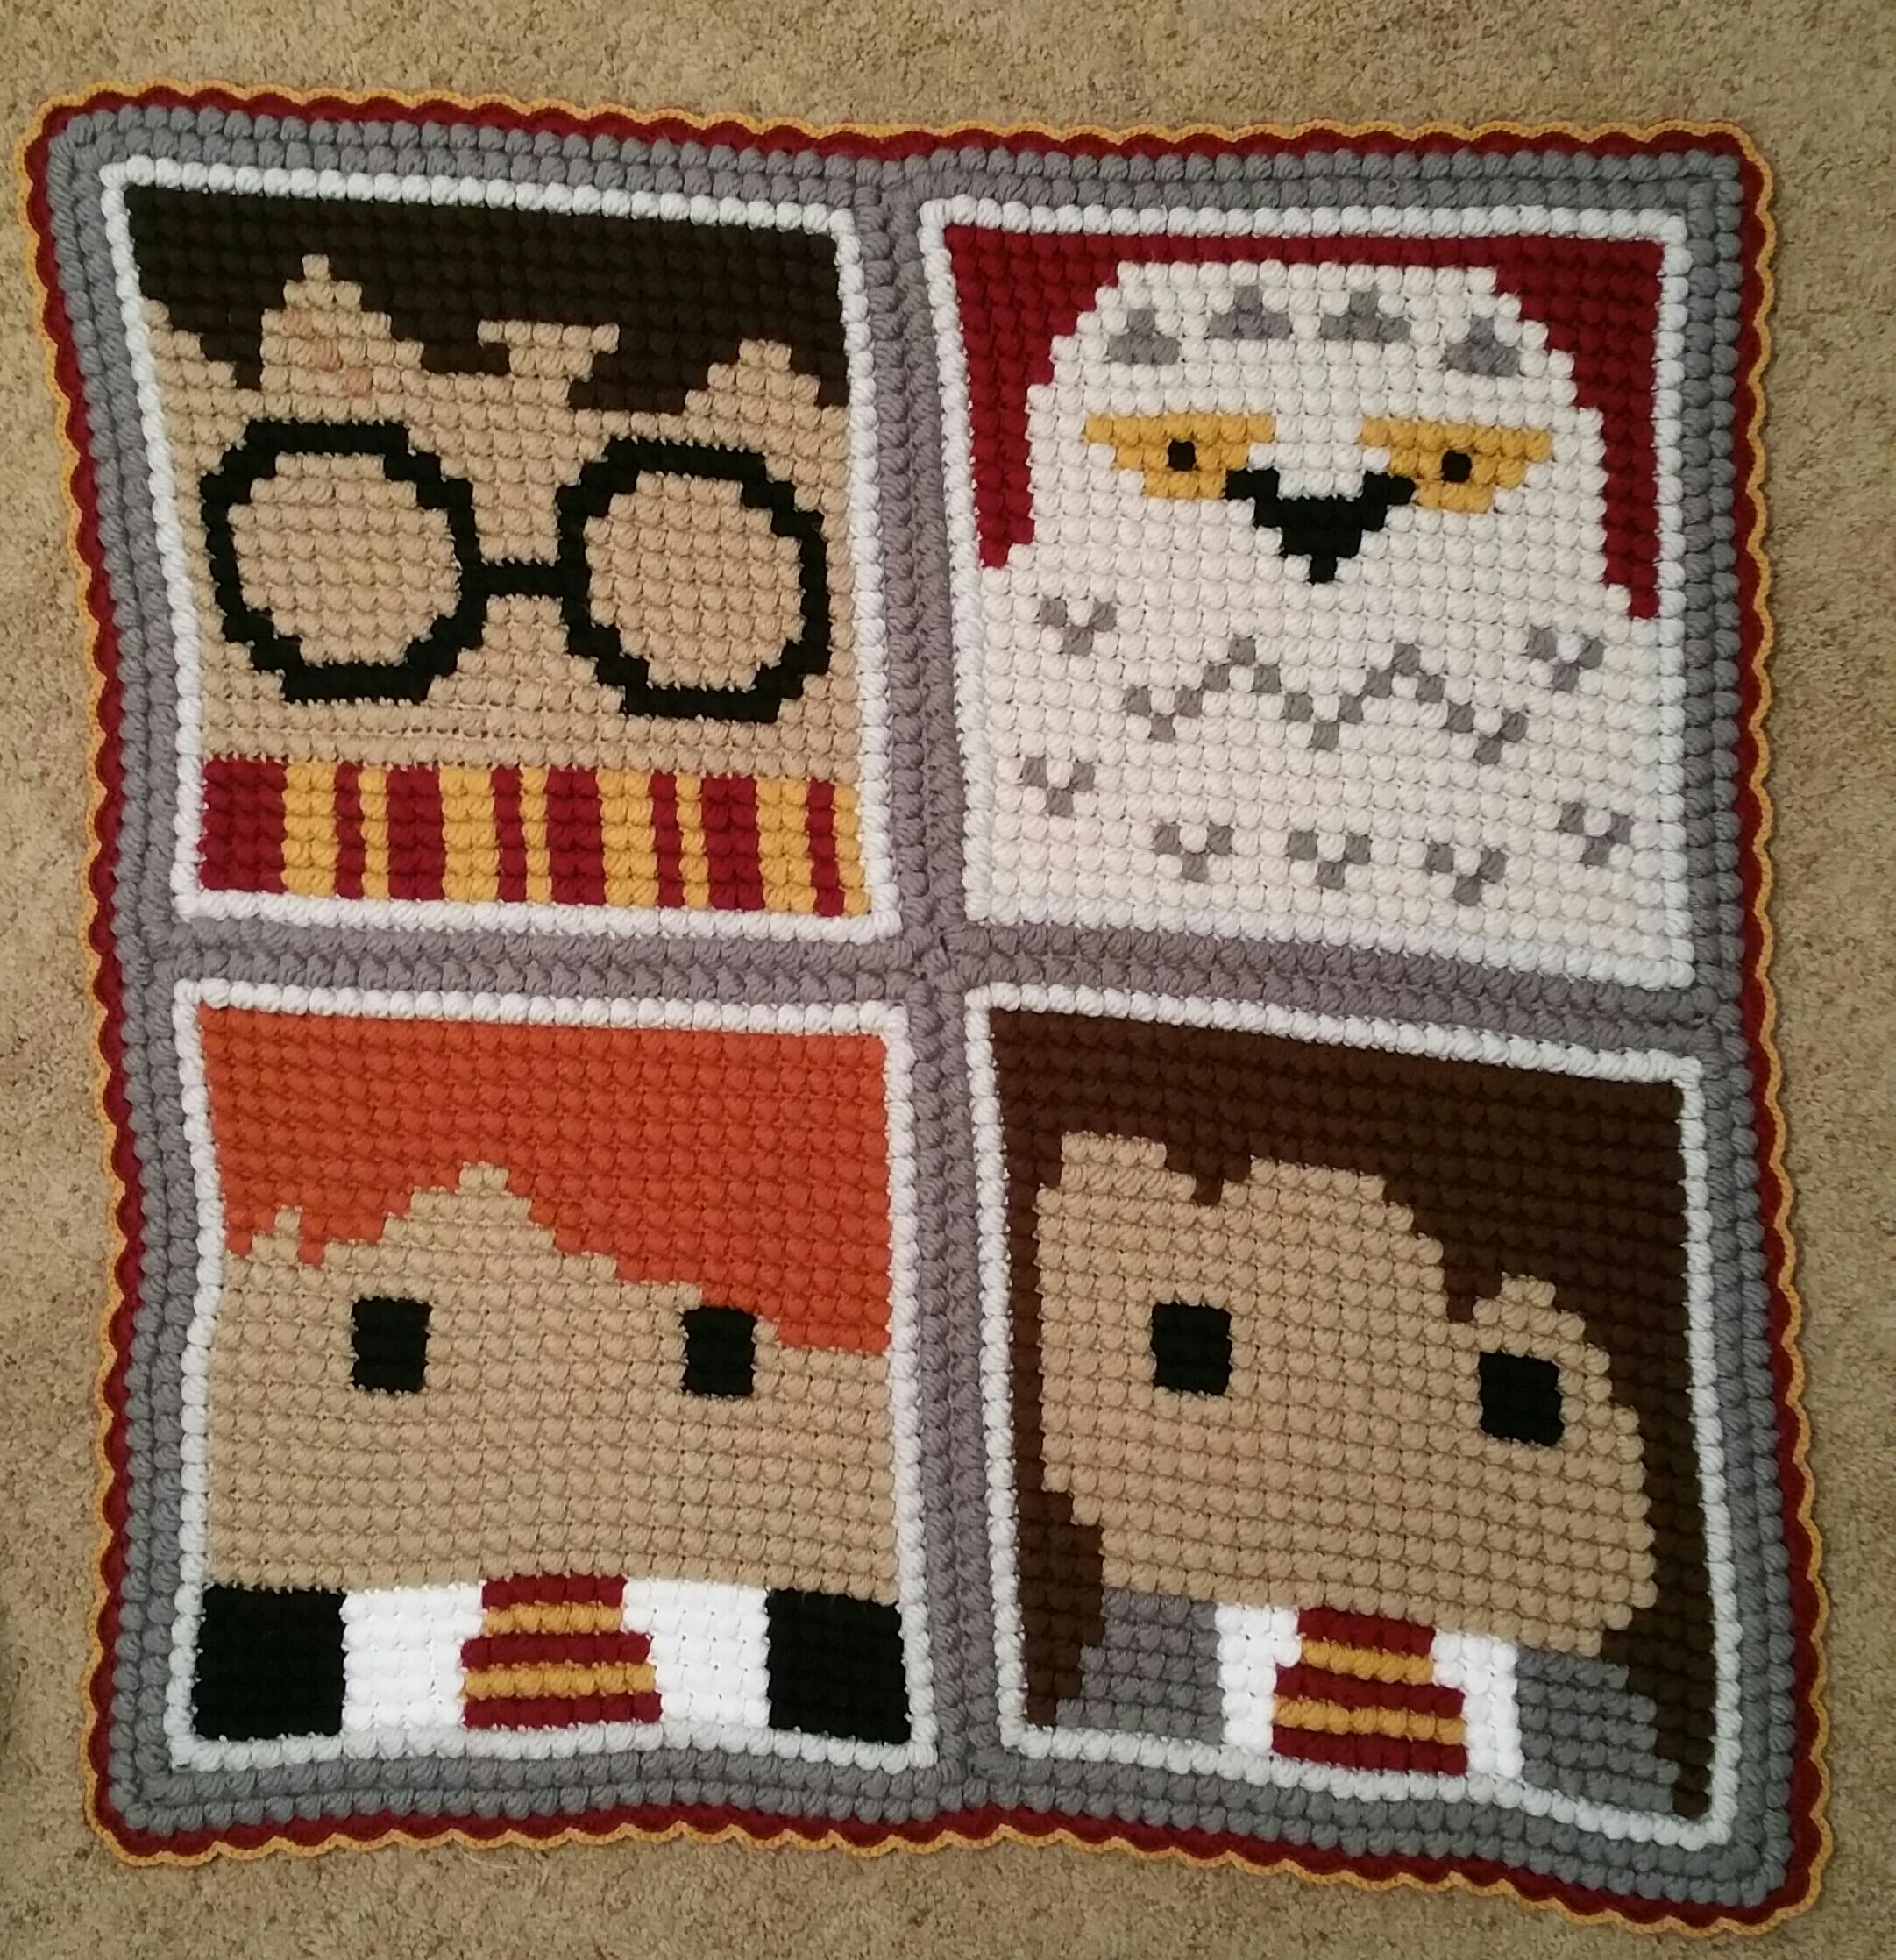 Crochet Mischief Managed Harry Potter Tummy Time